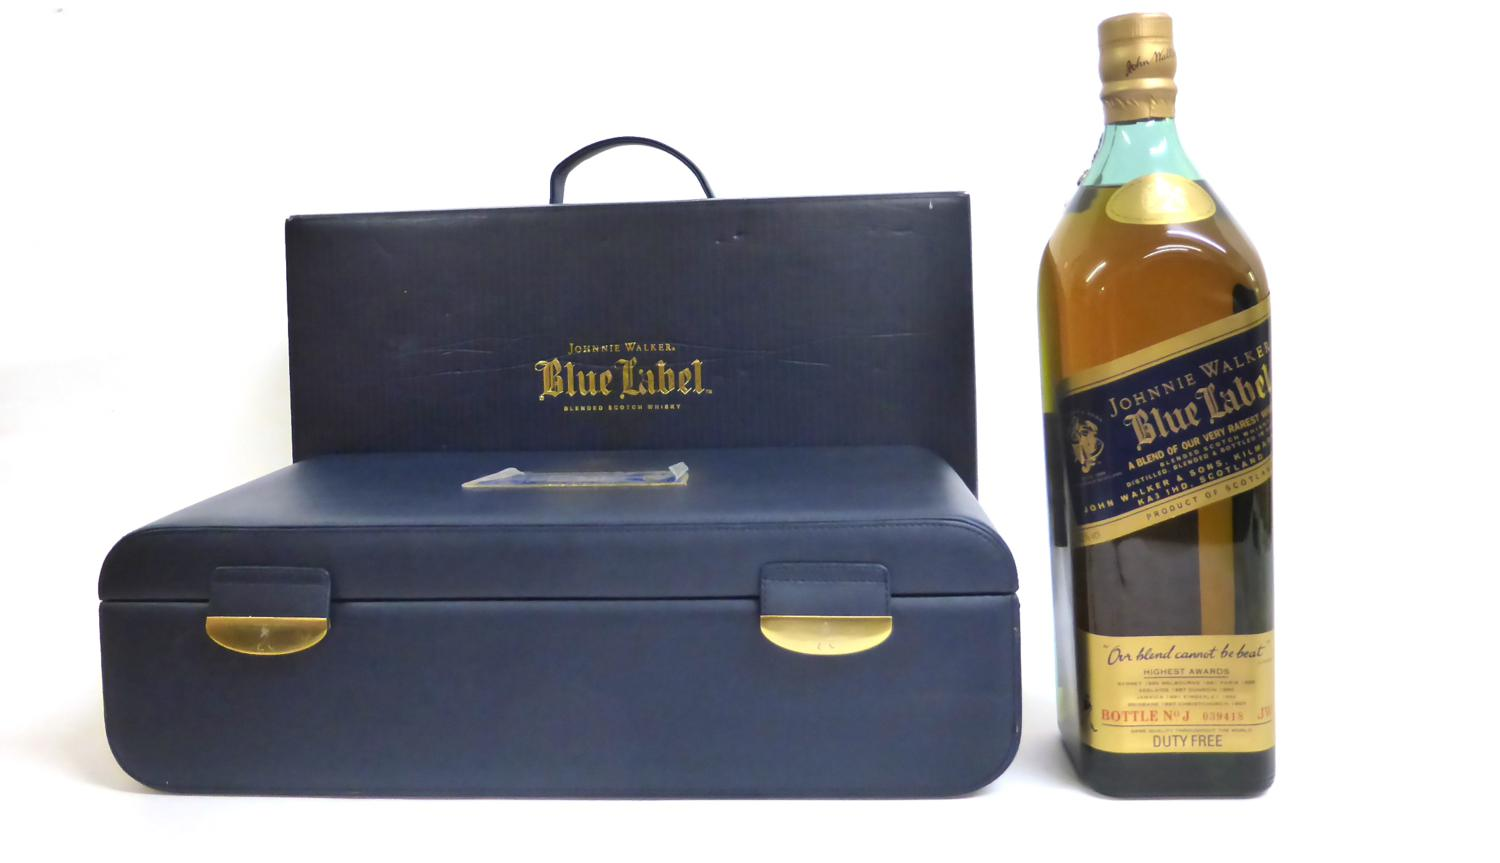 This is an image of Luscious Johnnie Walker Blue Label Case